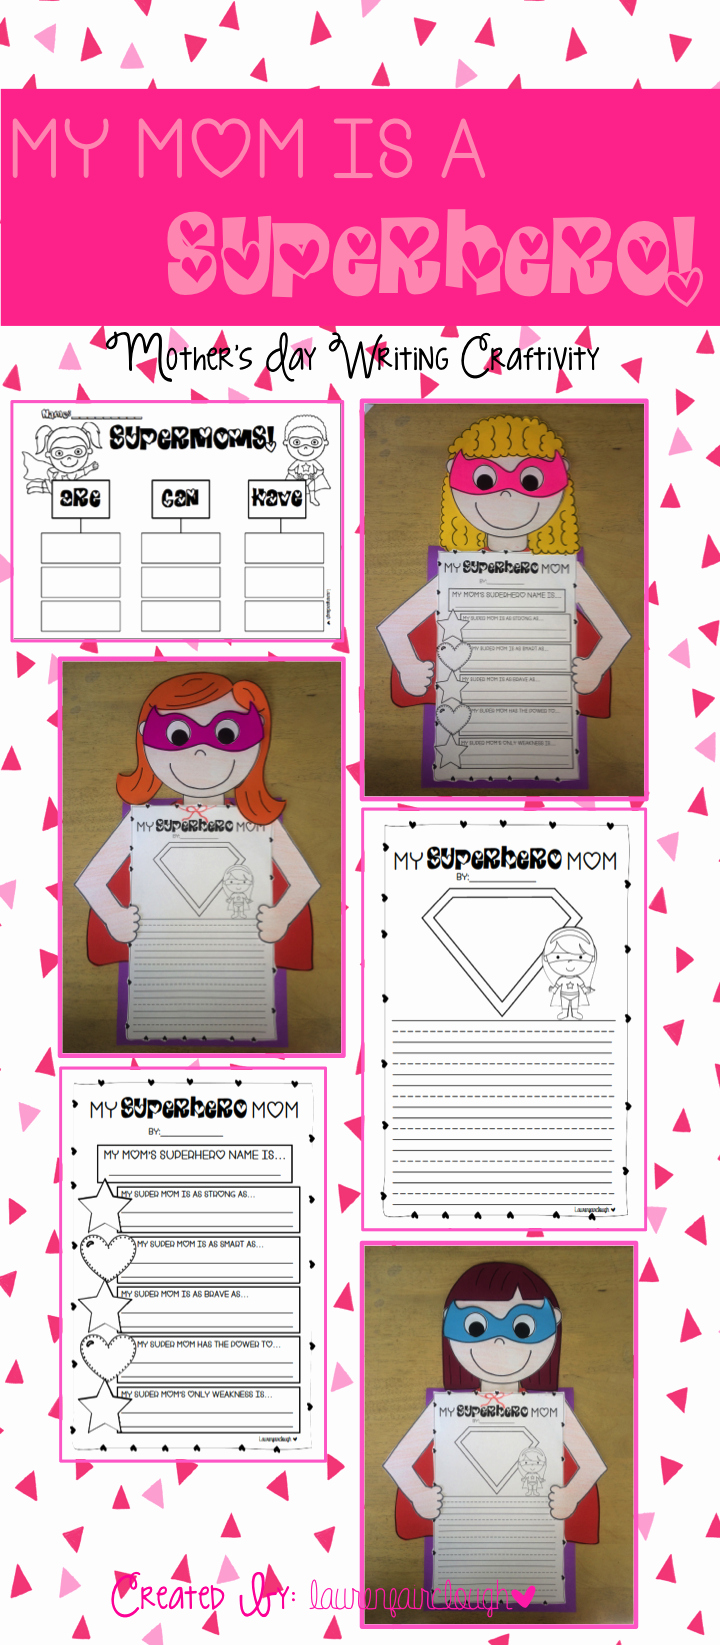 Mother's Day Writing Template Unique Mother S Day Writing and Craft My Mum is A Superhero